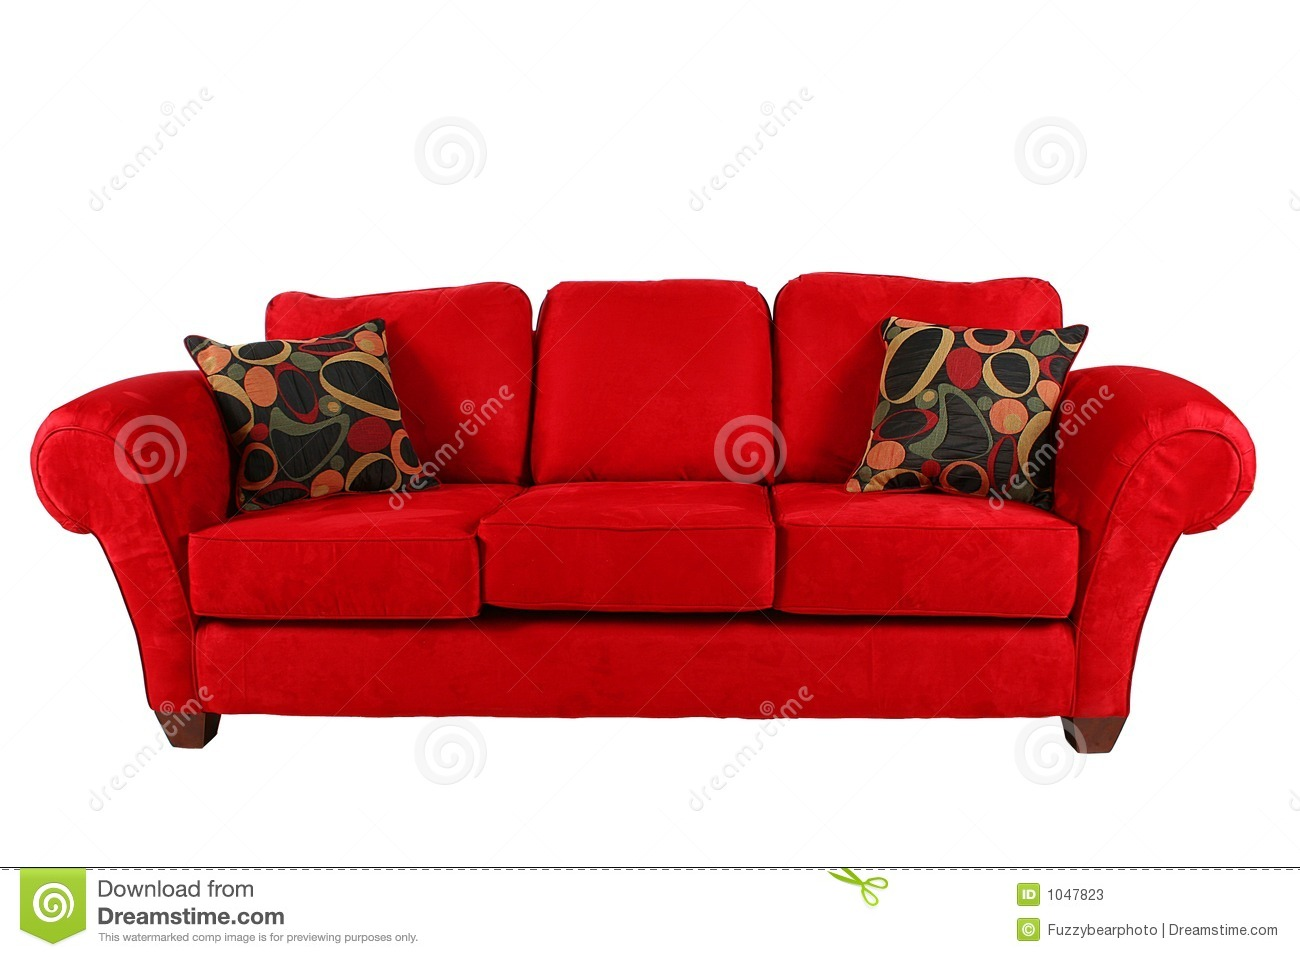 Bright red sofa with heavily patterned throw pillows in matching color, white, light brown and blue. Red Sofa With Modern Pillows Stock Image - Image: 1047823